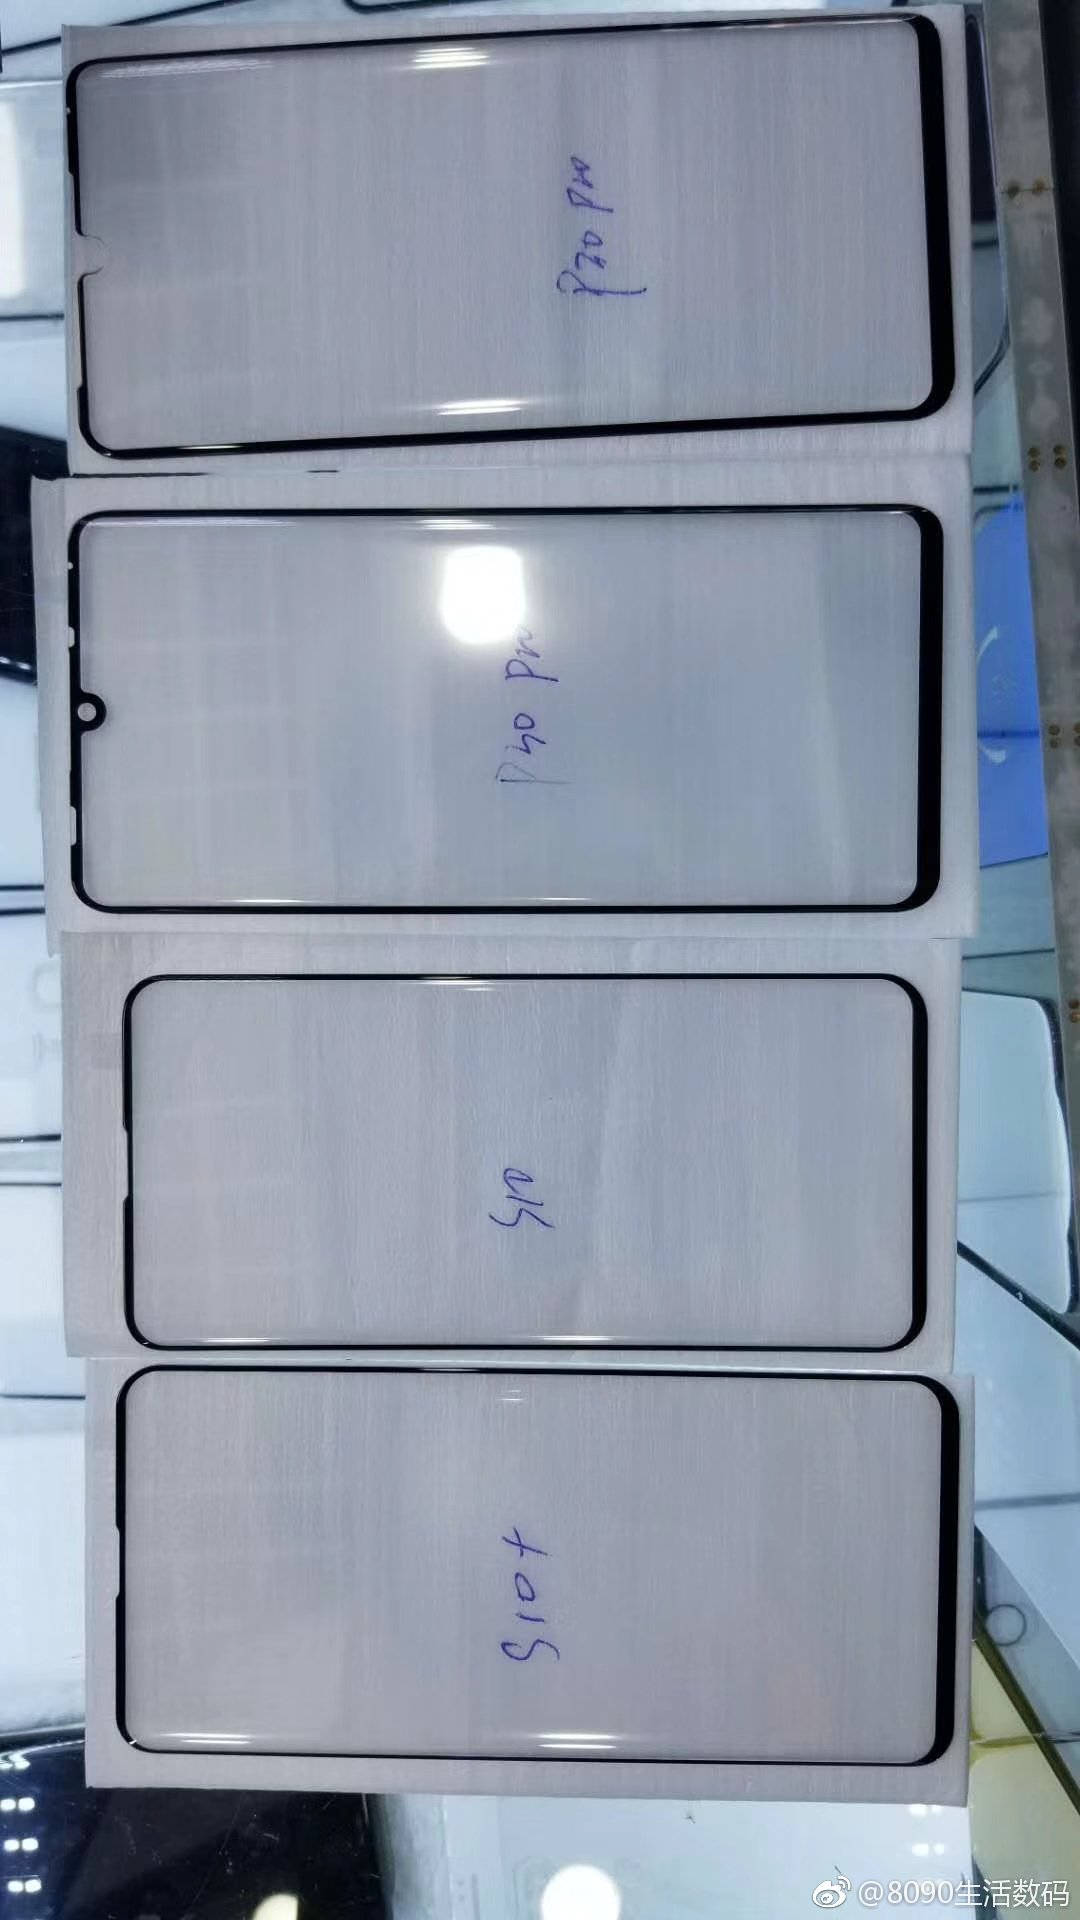 Huawei p30 front glass alog with mate 20 pro and s10 s10+